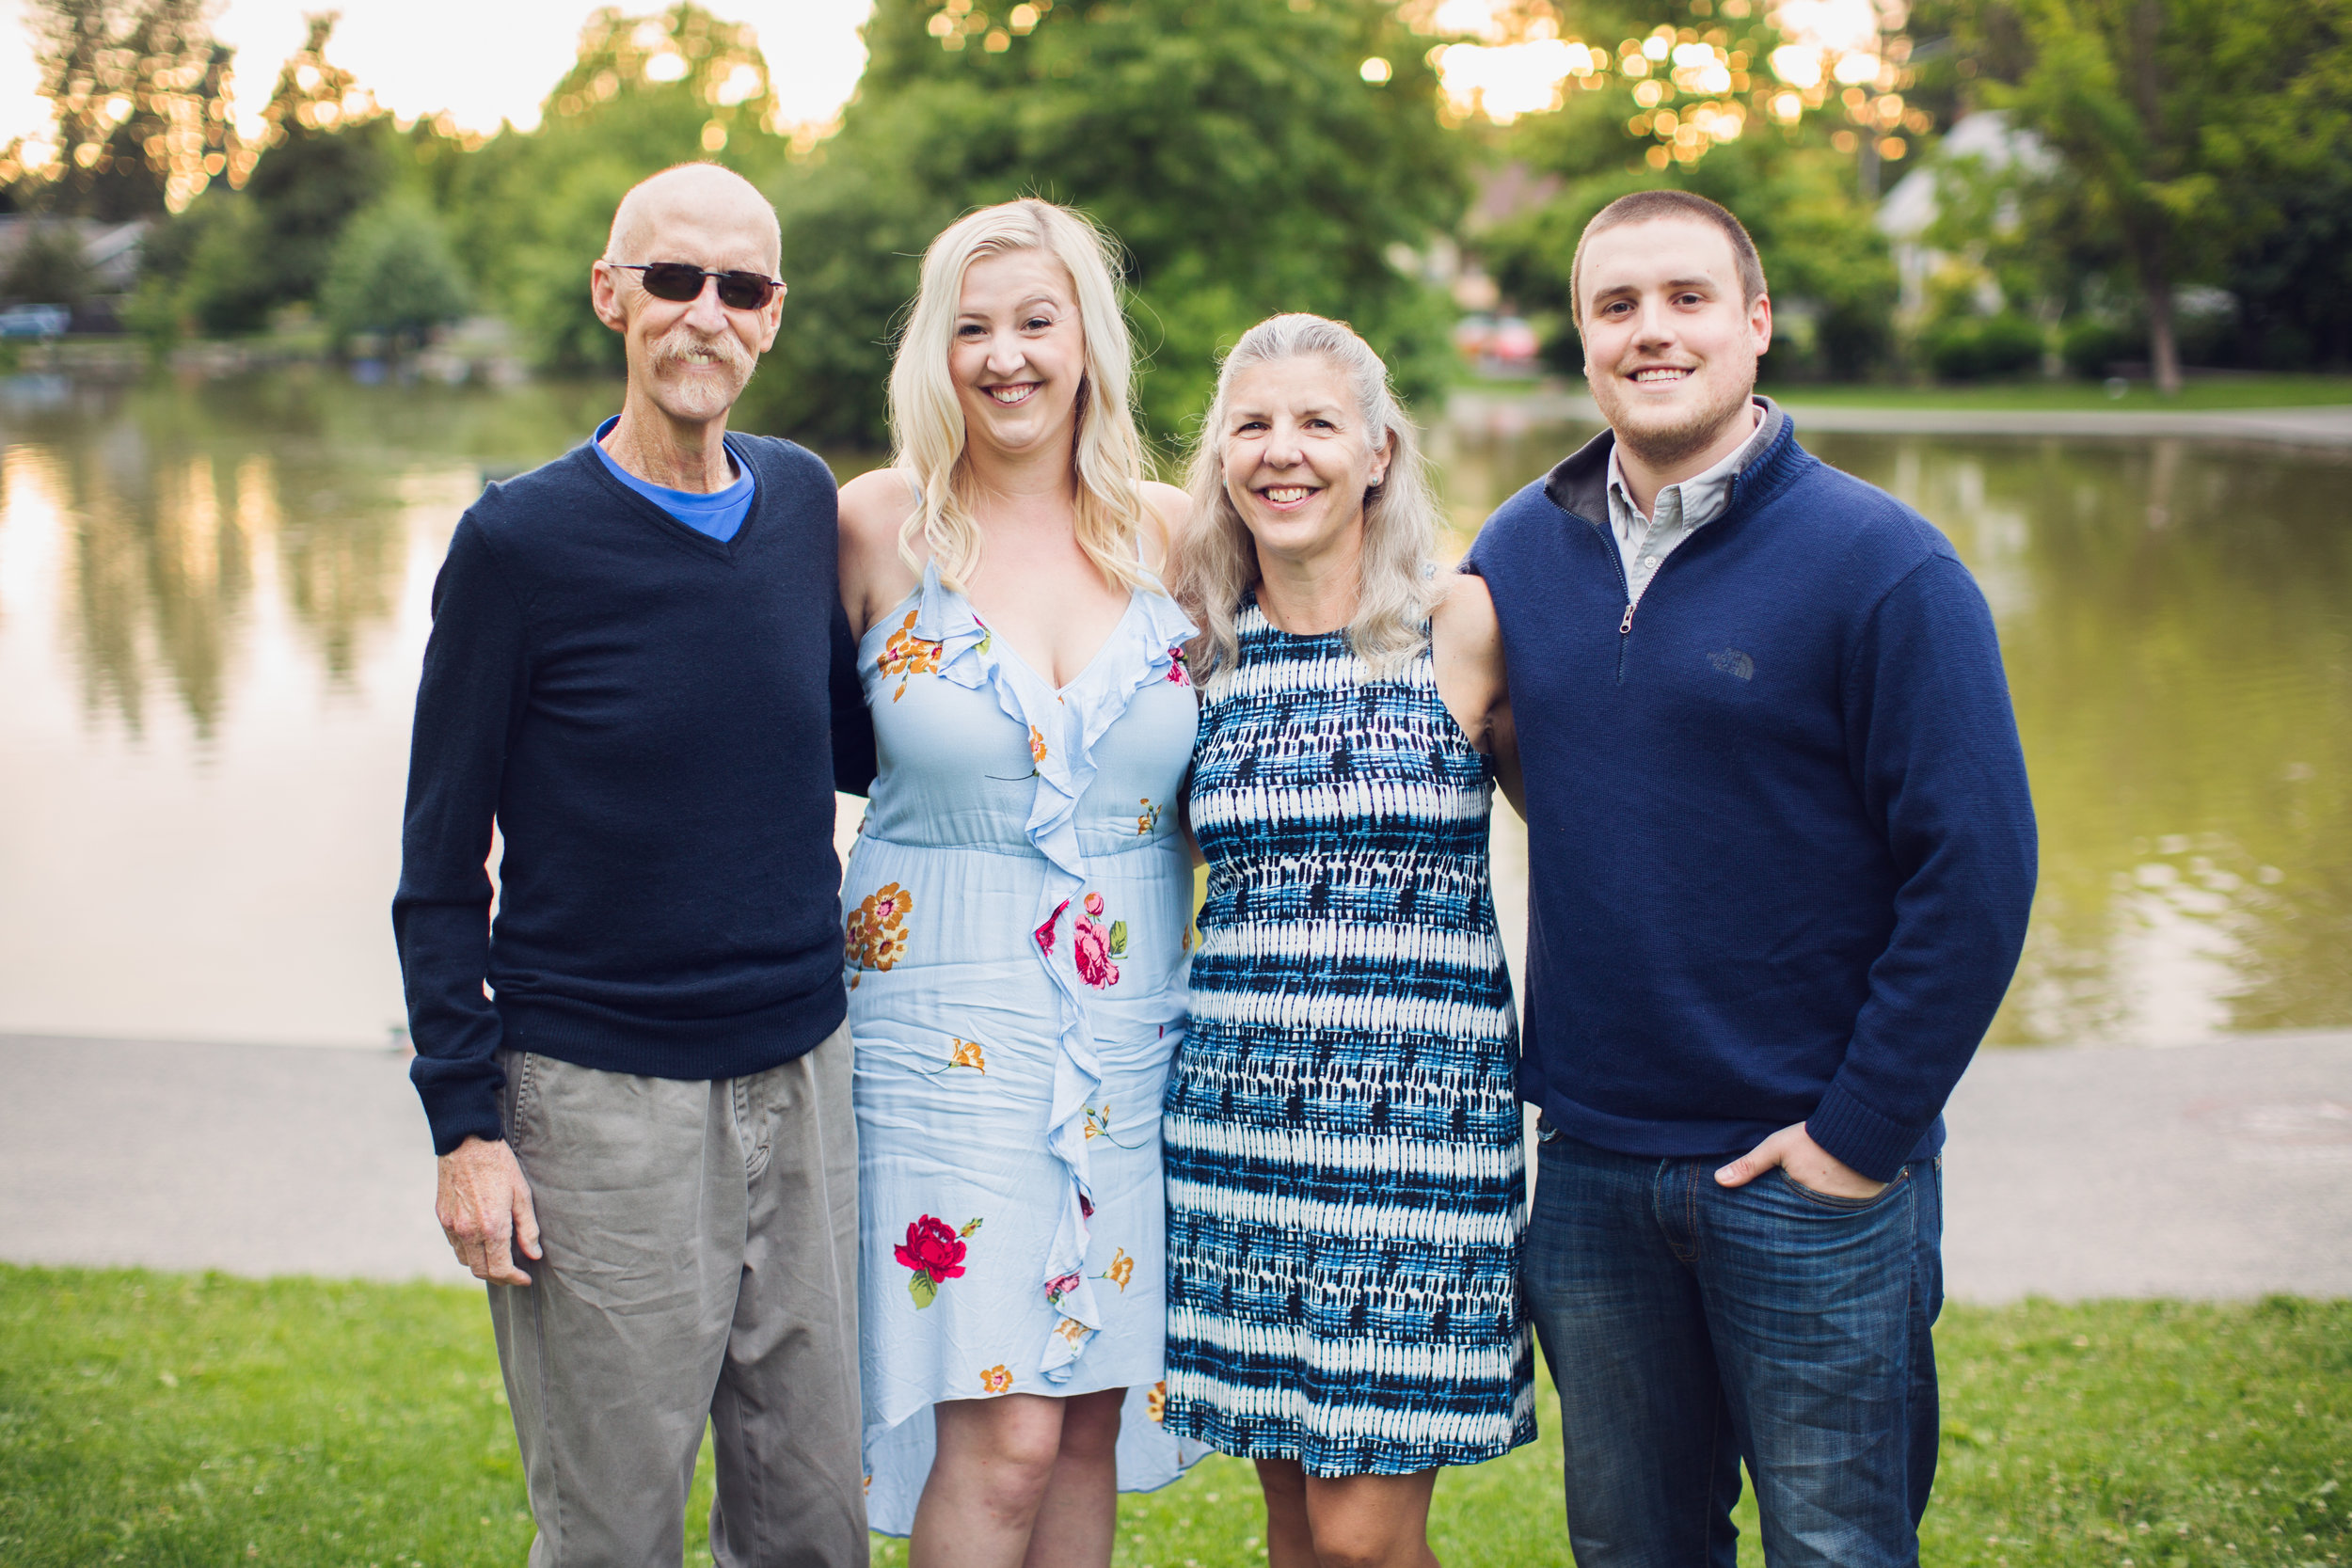 """""""Our family photo session with Emily was a great experience. She was professional and friendly, and wonderfully patient and persistent. Emily has an excellent eye for light, color, background, and arrangement of her subjects. Our photos were beautiful, and we will treasure them always.""""  -Katherine H."""